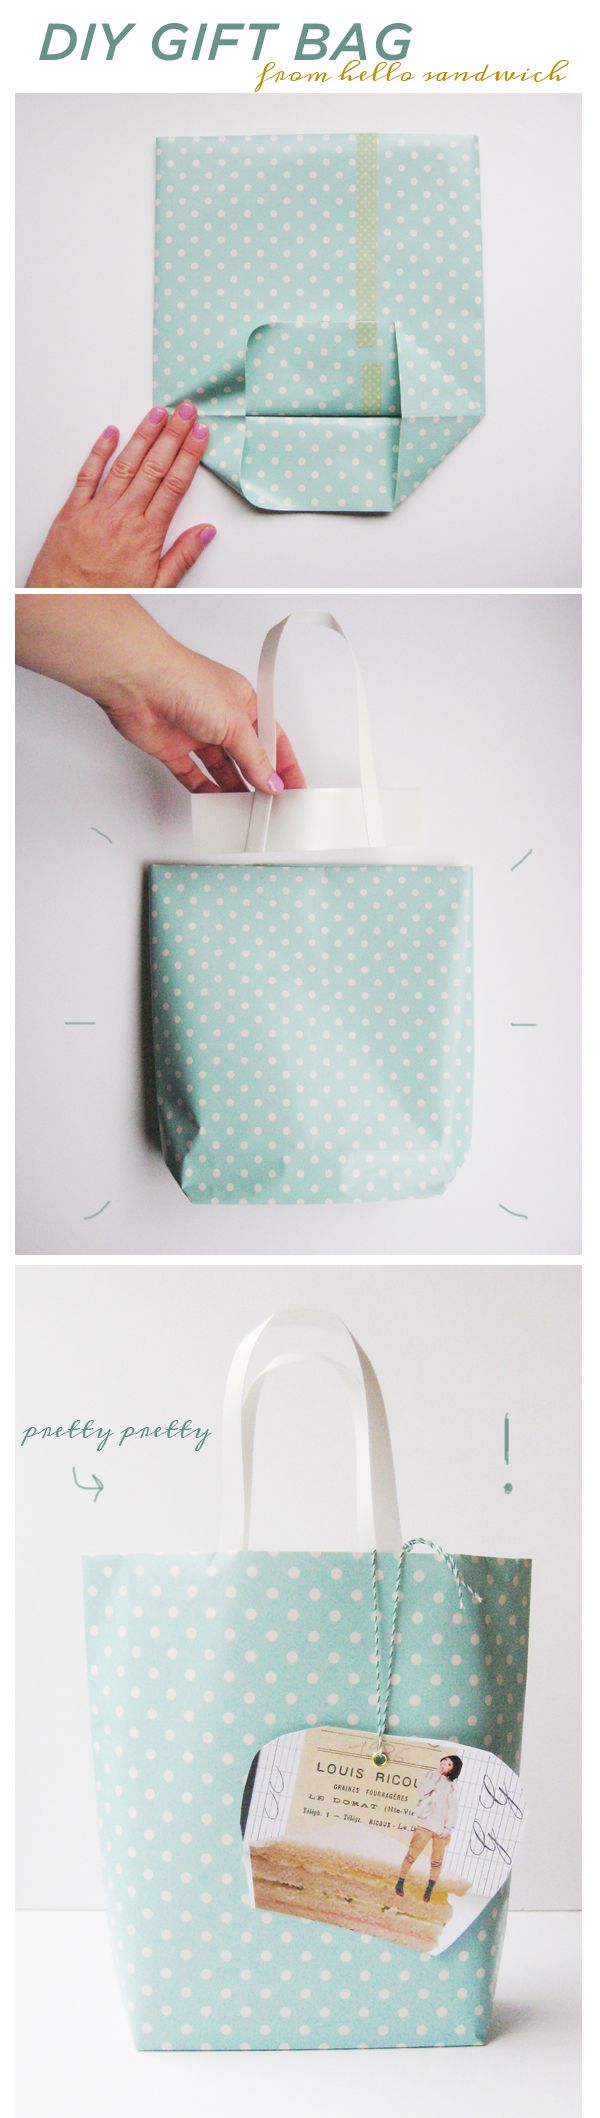 Wow look at this diy gift baglove this idea the polka dot gift wow look at this diy gift baglove this idea the polka solutioingenieria Image collections